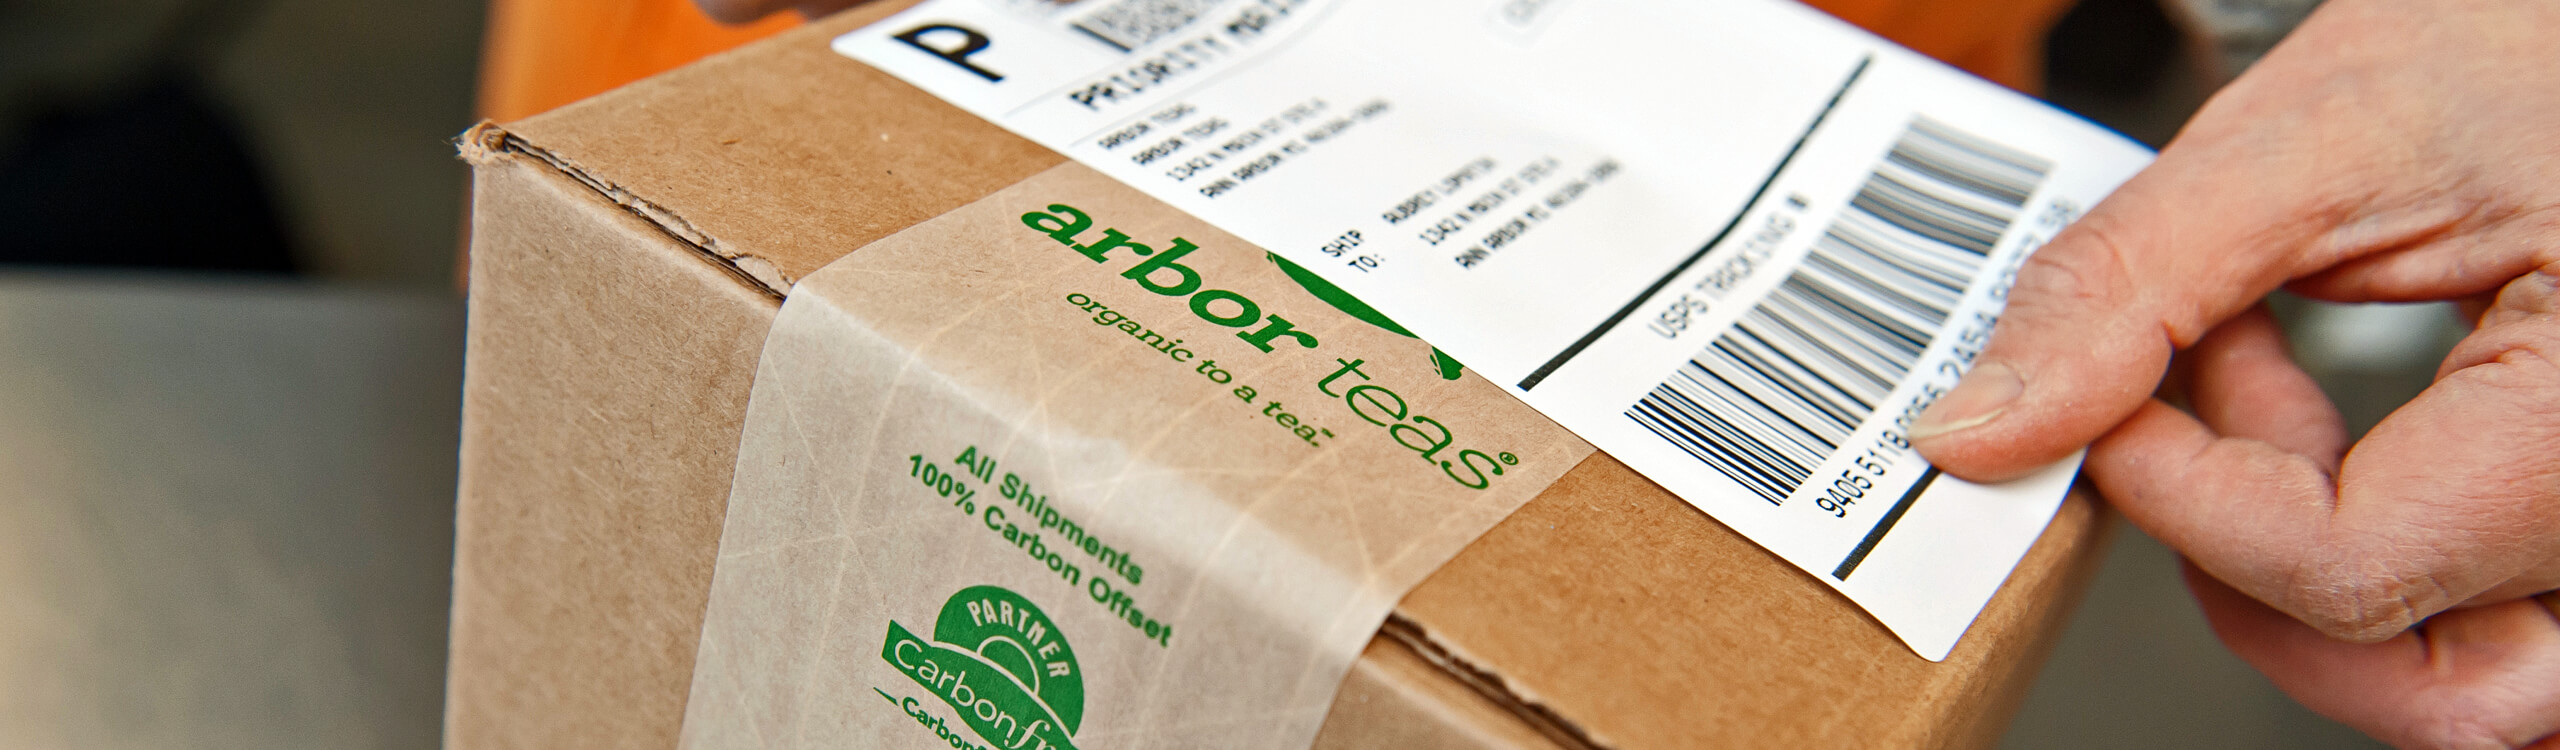 Arbor Teas Return Policy